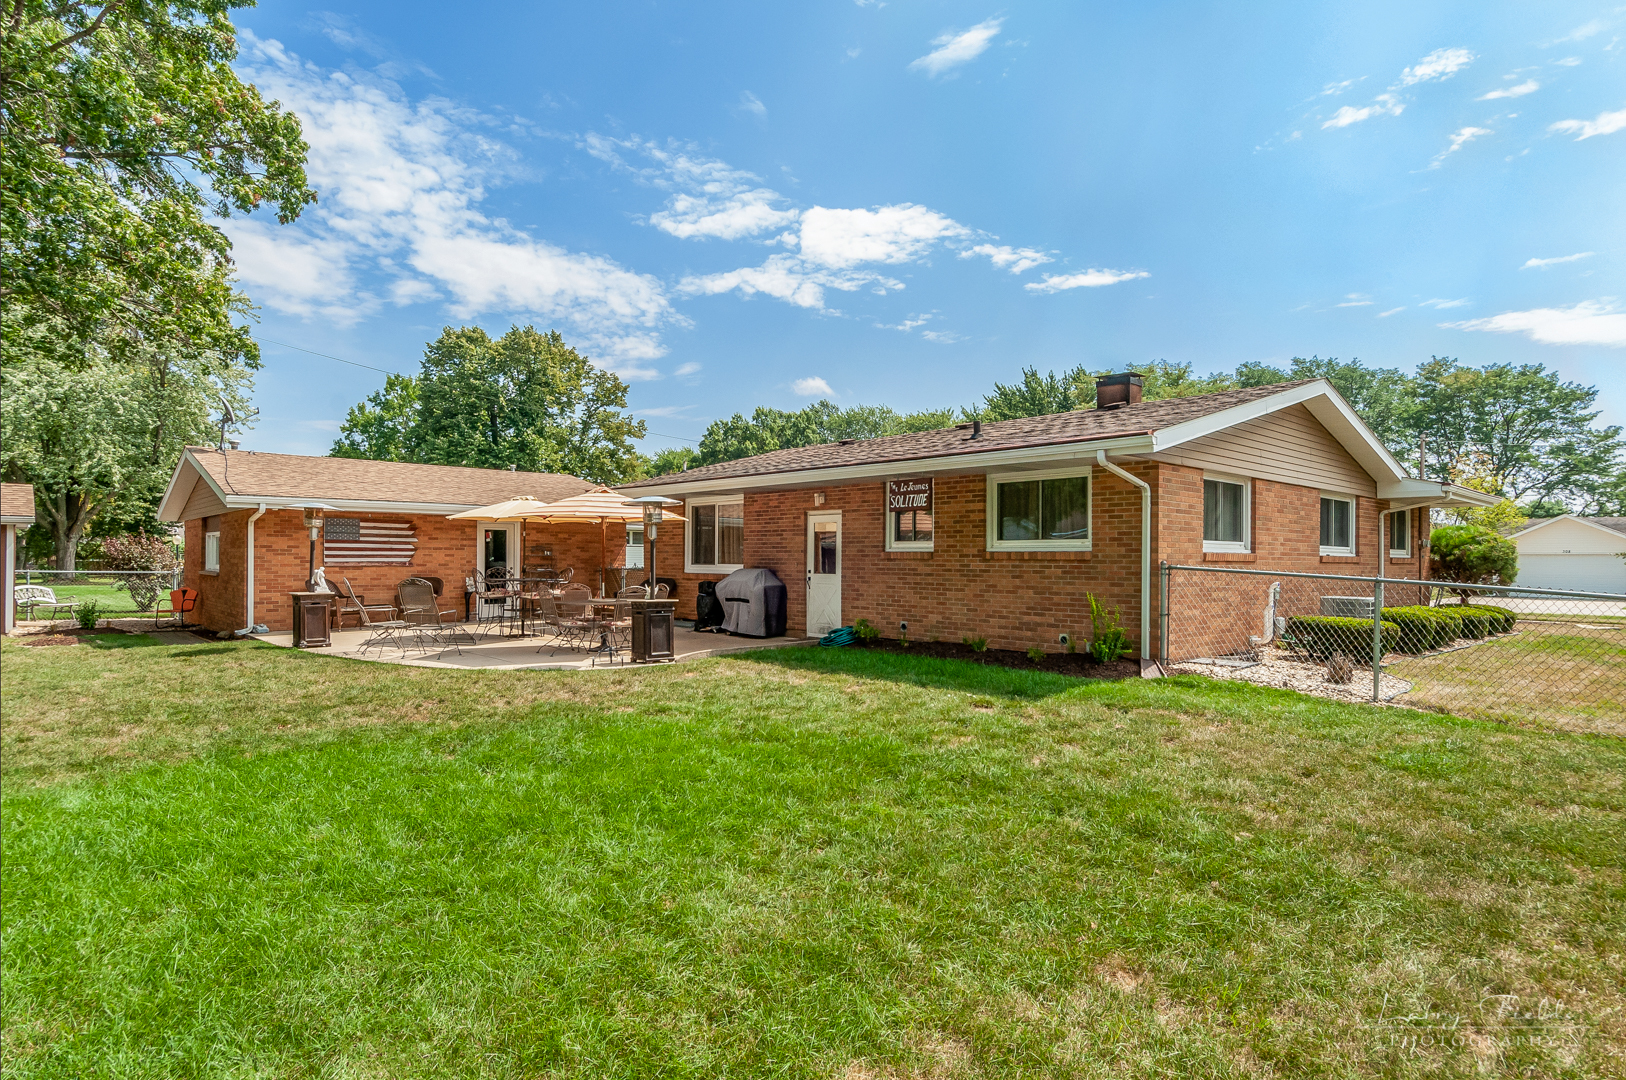 223 West Pleasant, SANDWICH, Illinois, 60548